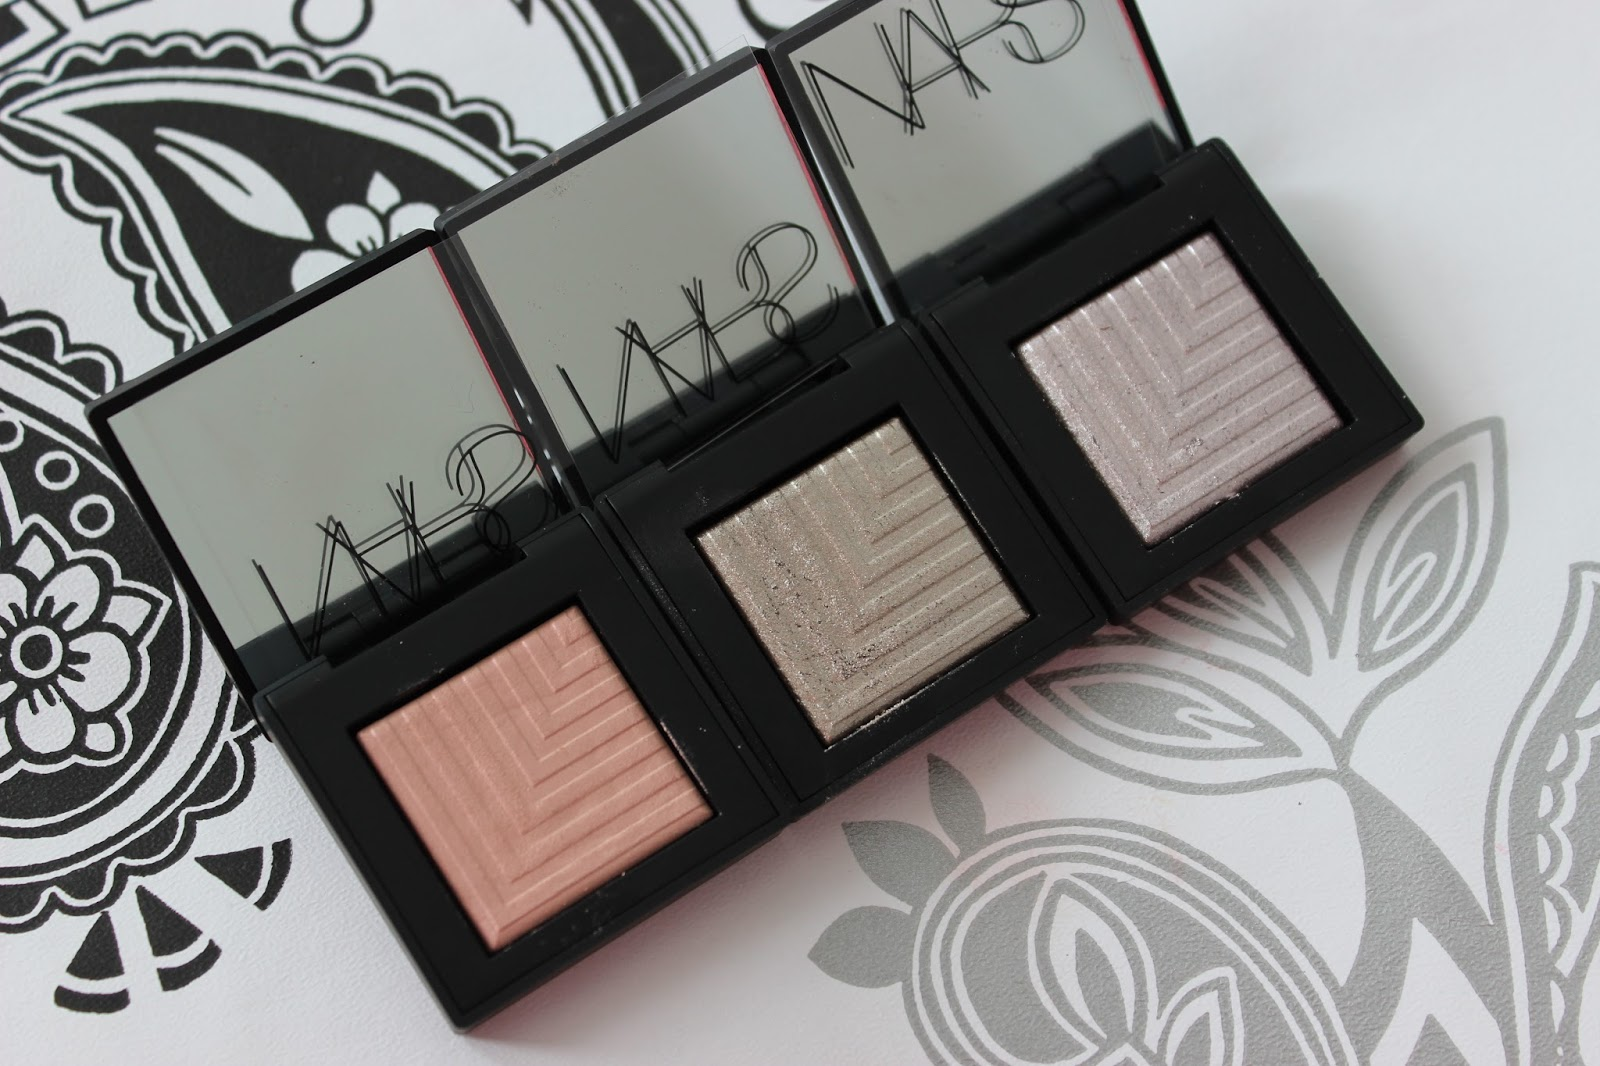 Nars dual intensity eye shadows